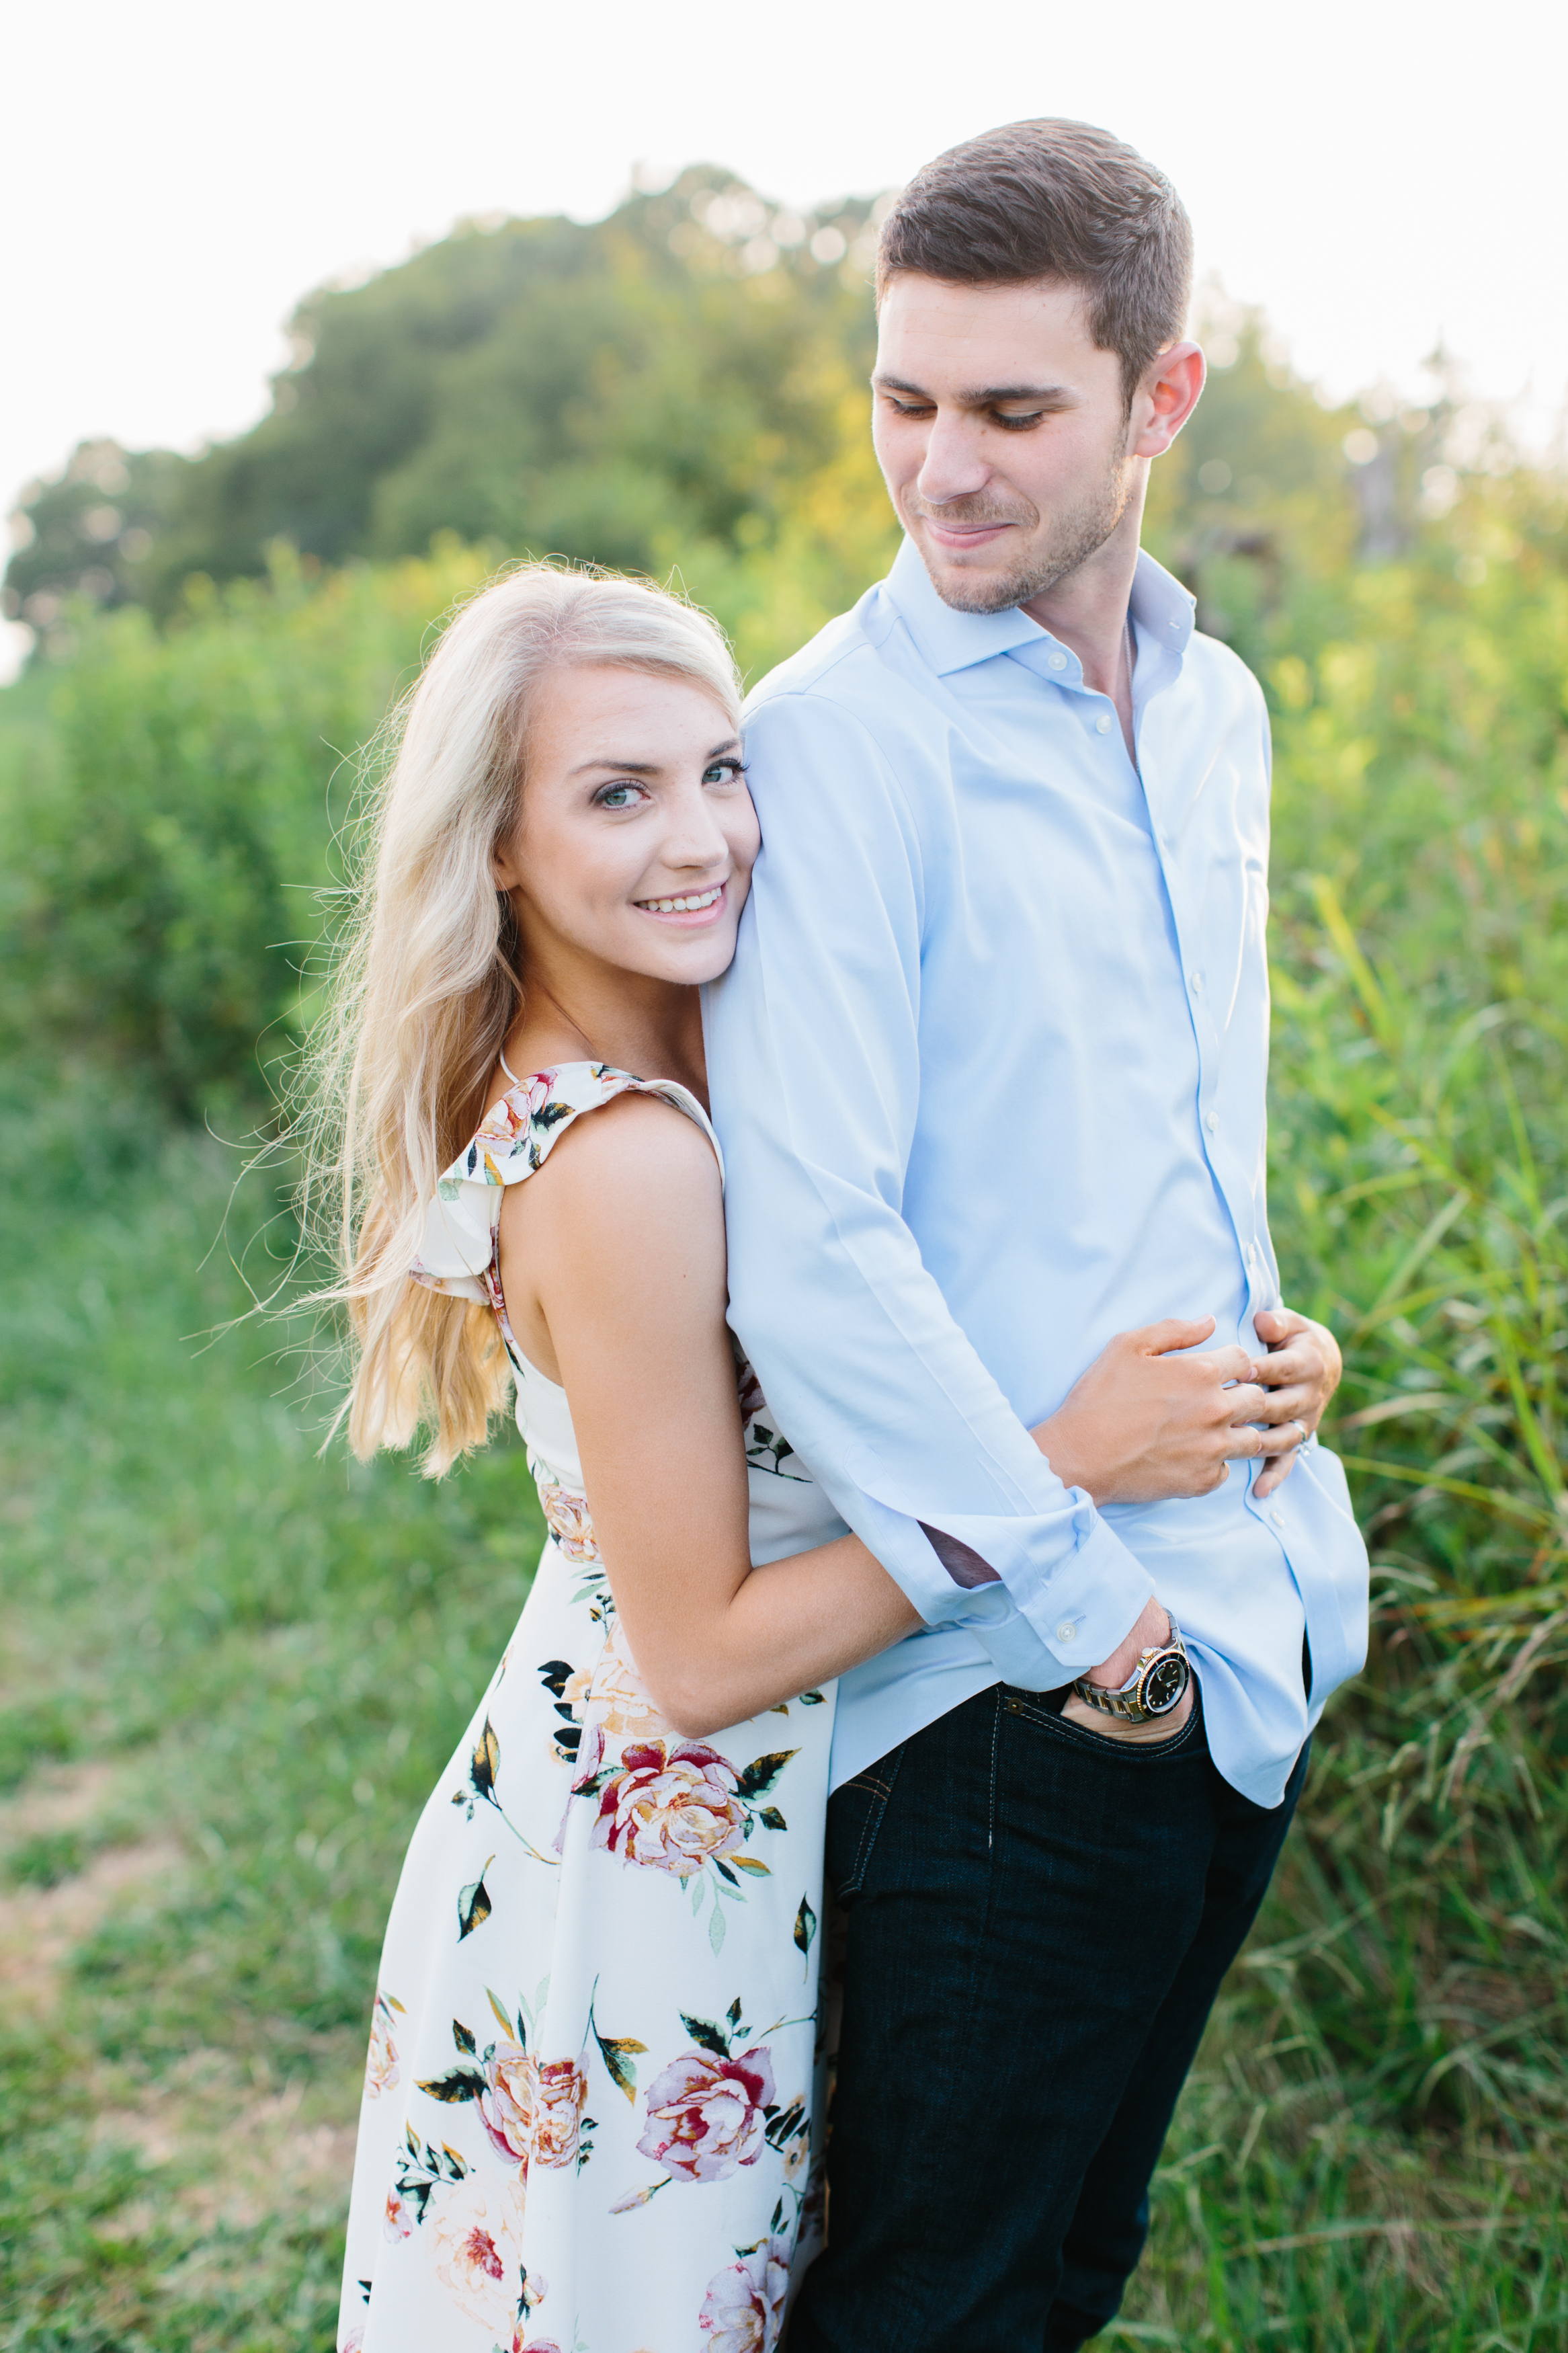 Marie_Perry_Engagement_Session_Abigail_malone_Photography-13.jpg